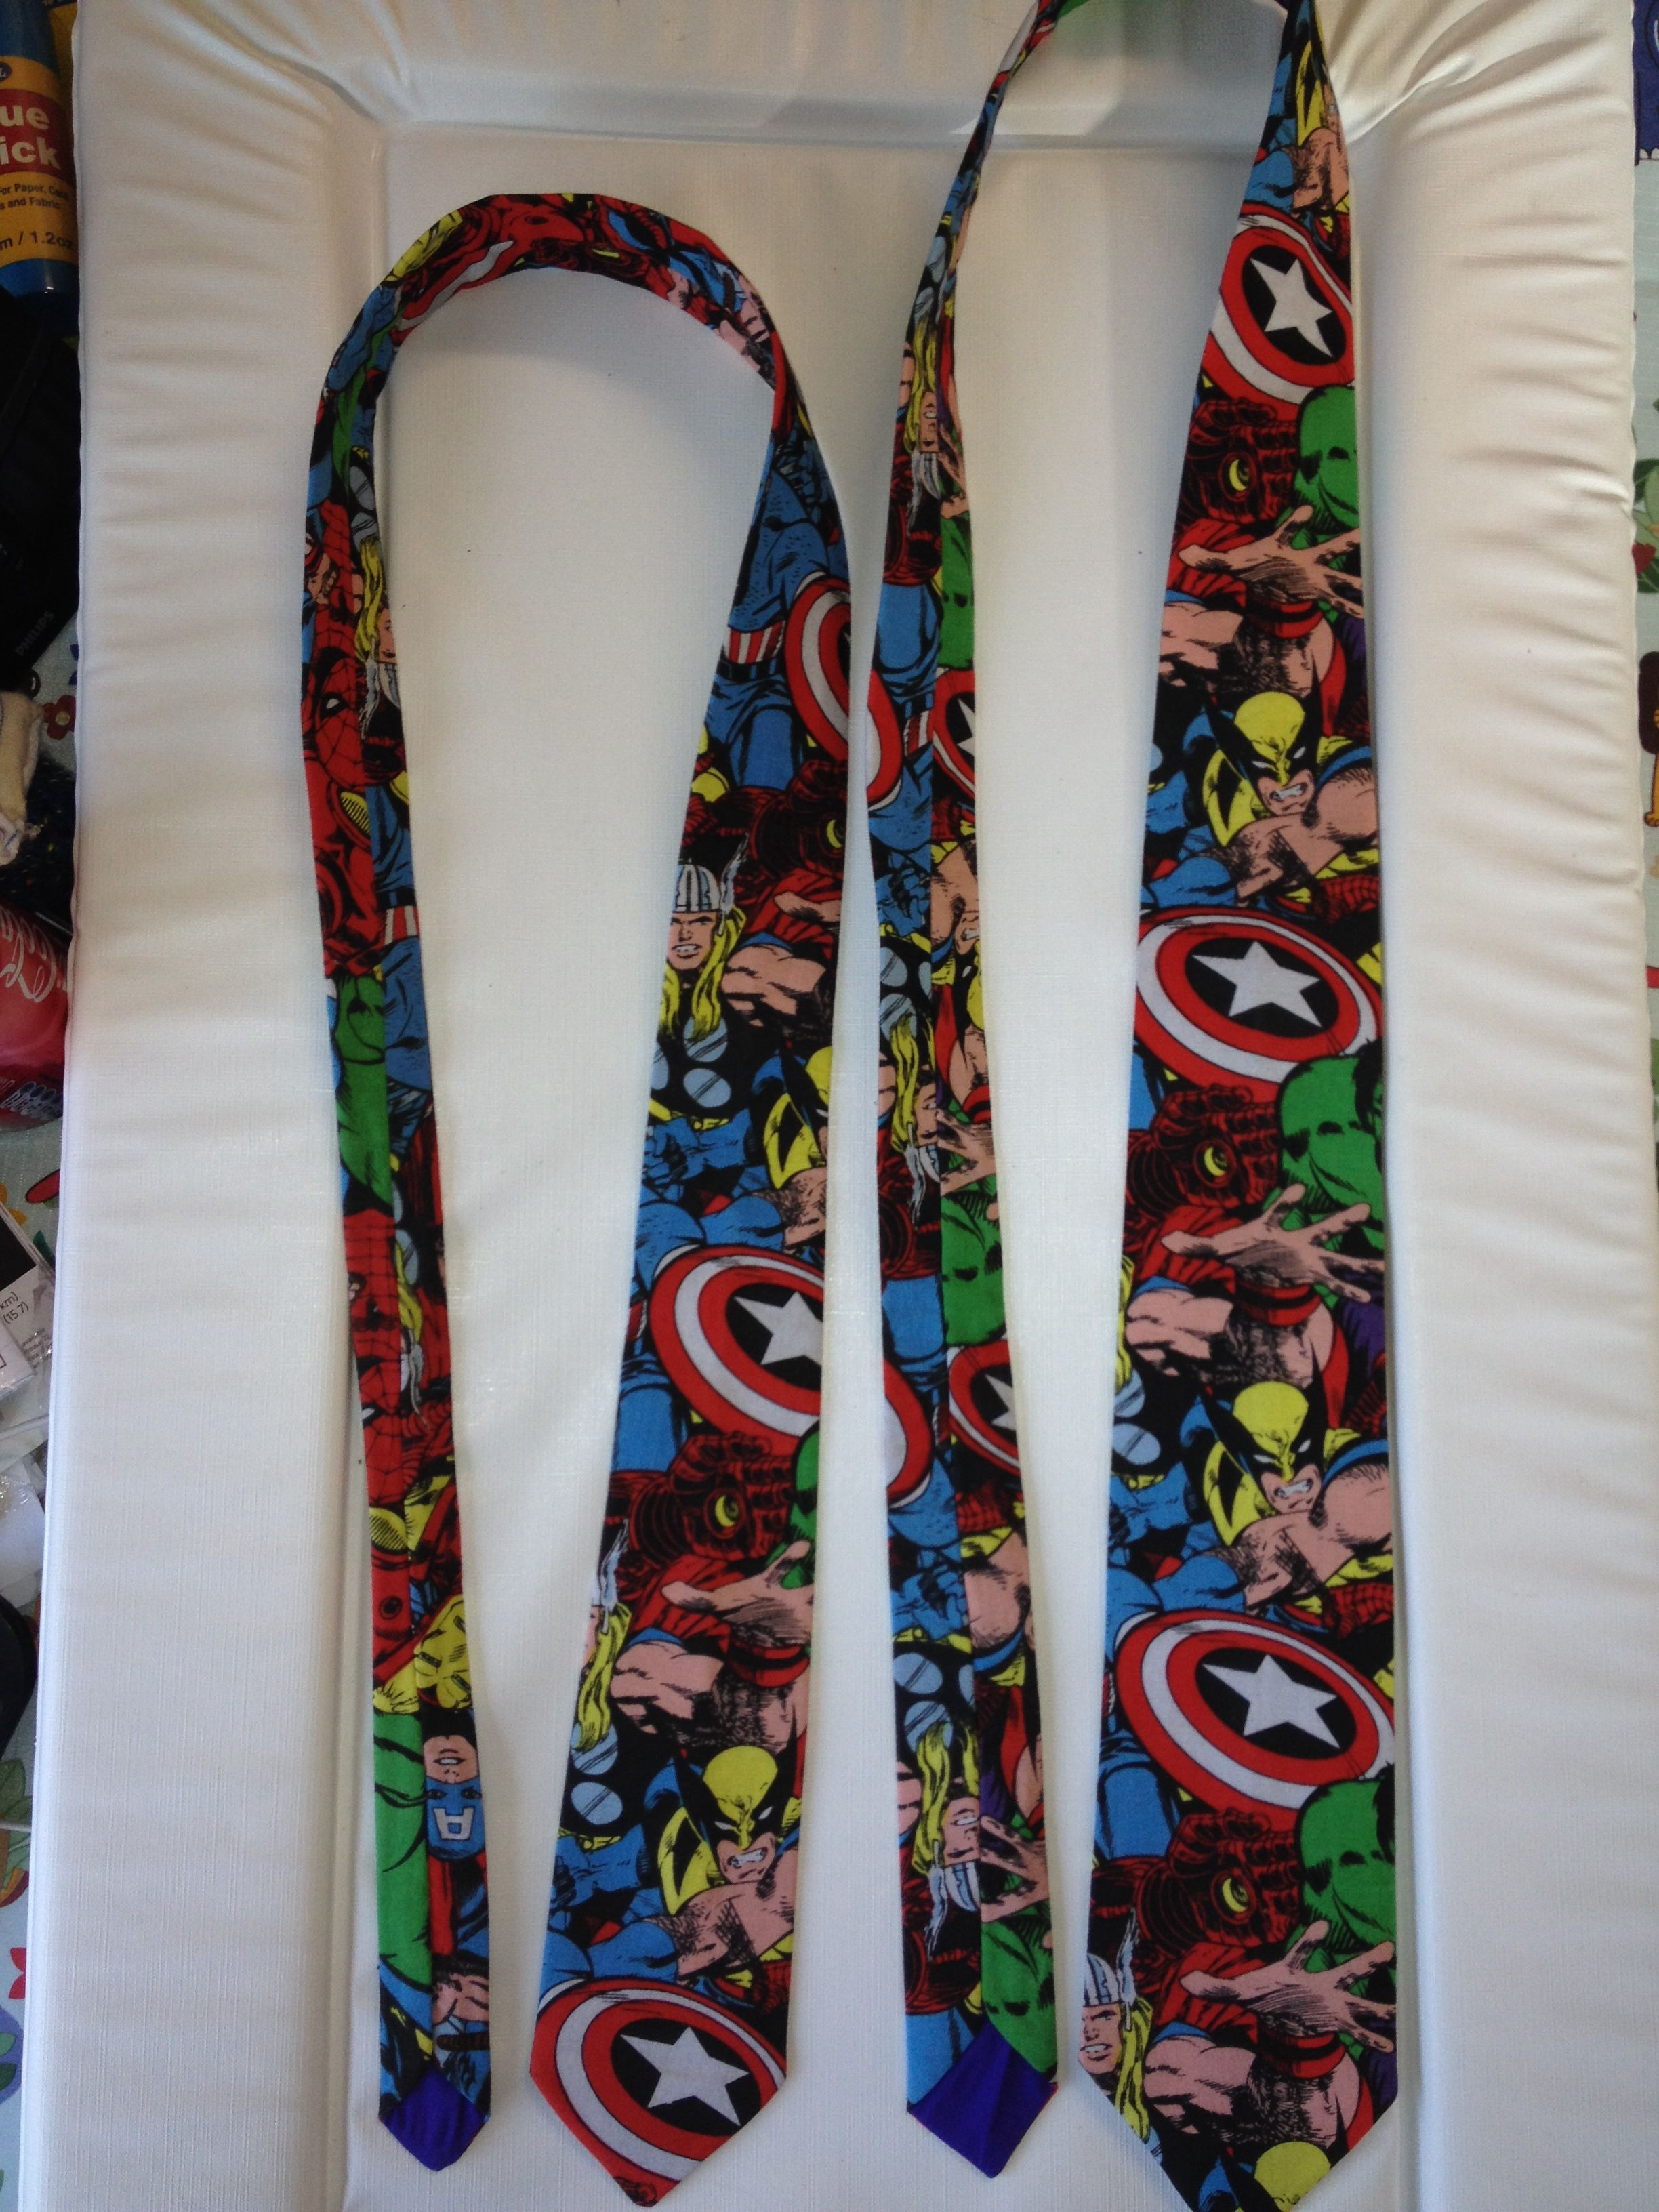 Raz craft handmade ties starting from just £10. These are marvel super hero ones. Look us up on Facebook :-)